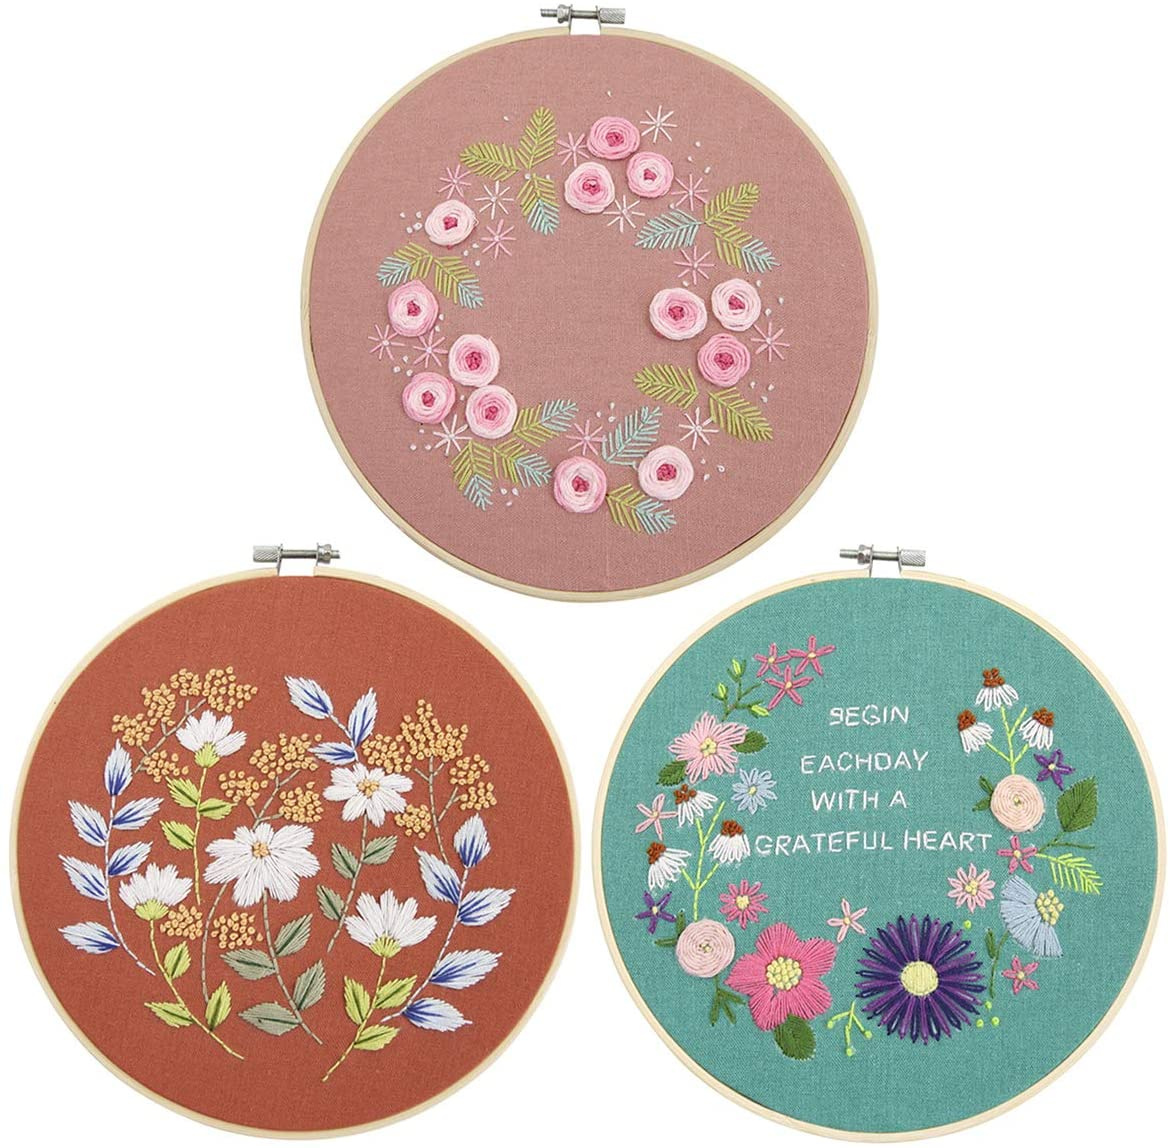 Eurobuy Cross Stitch Set, 3 Set of Embroidery Starter Kit Floral Cross Stitch Kit for Beginners Adults Kids Patterned Embroidery Cloth + Bamboo Hook + Tools